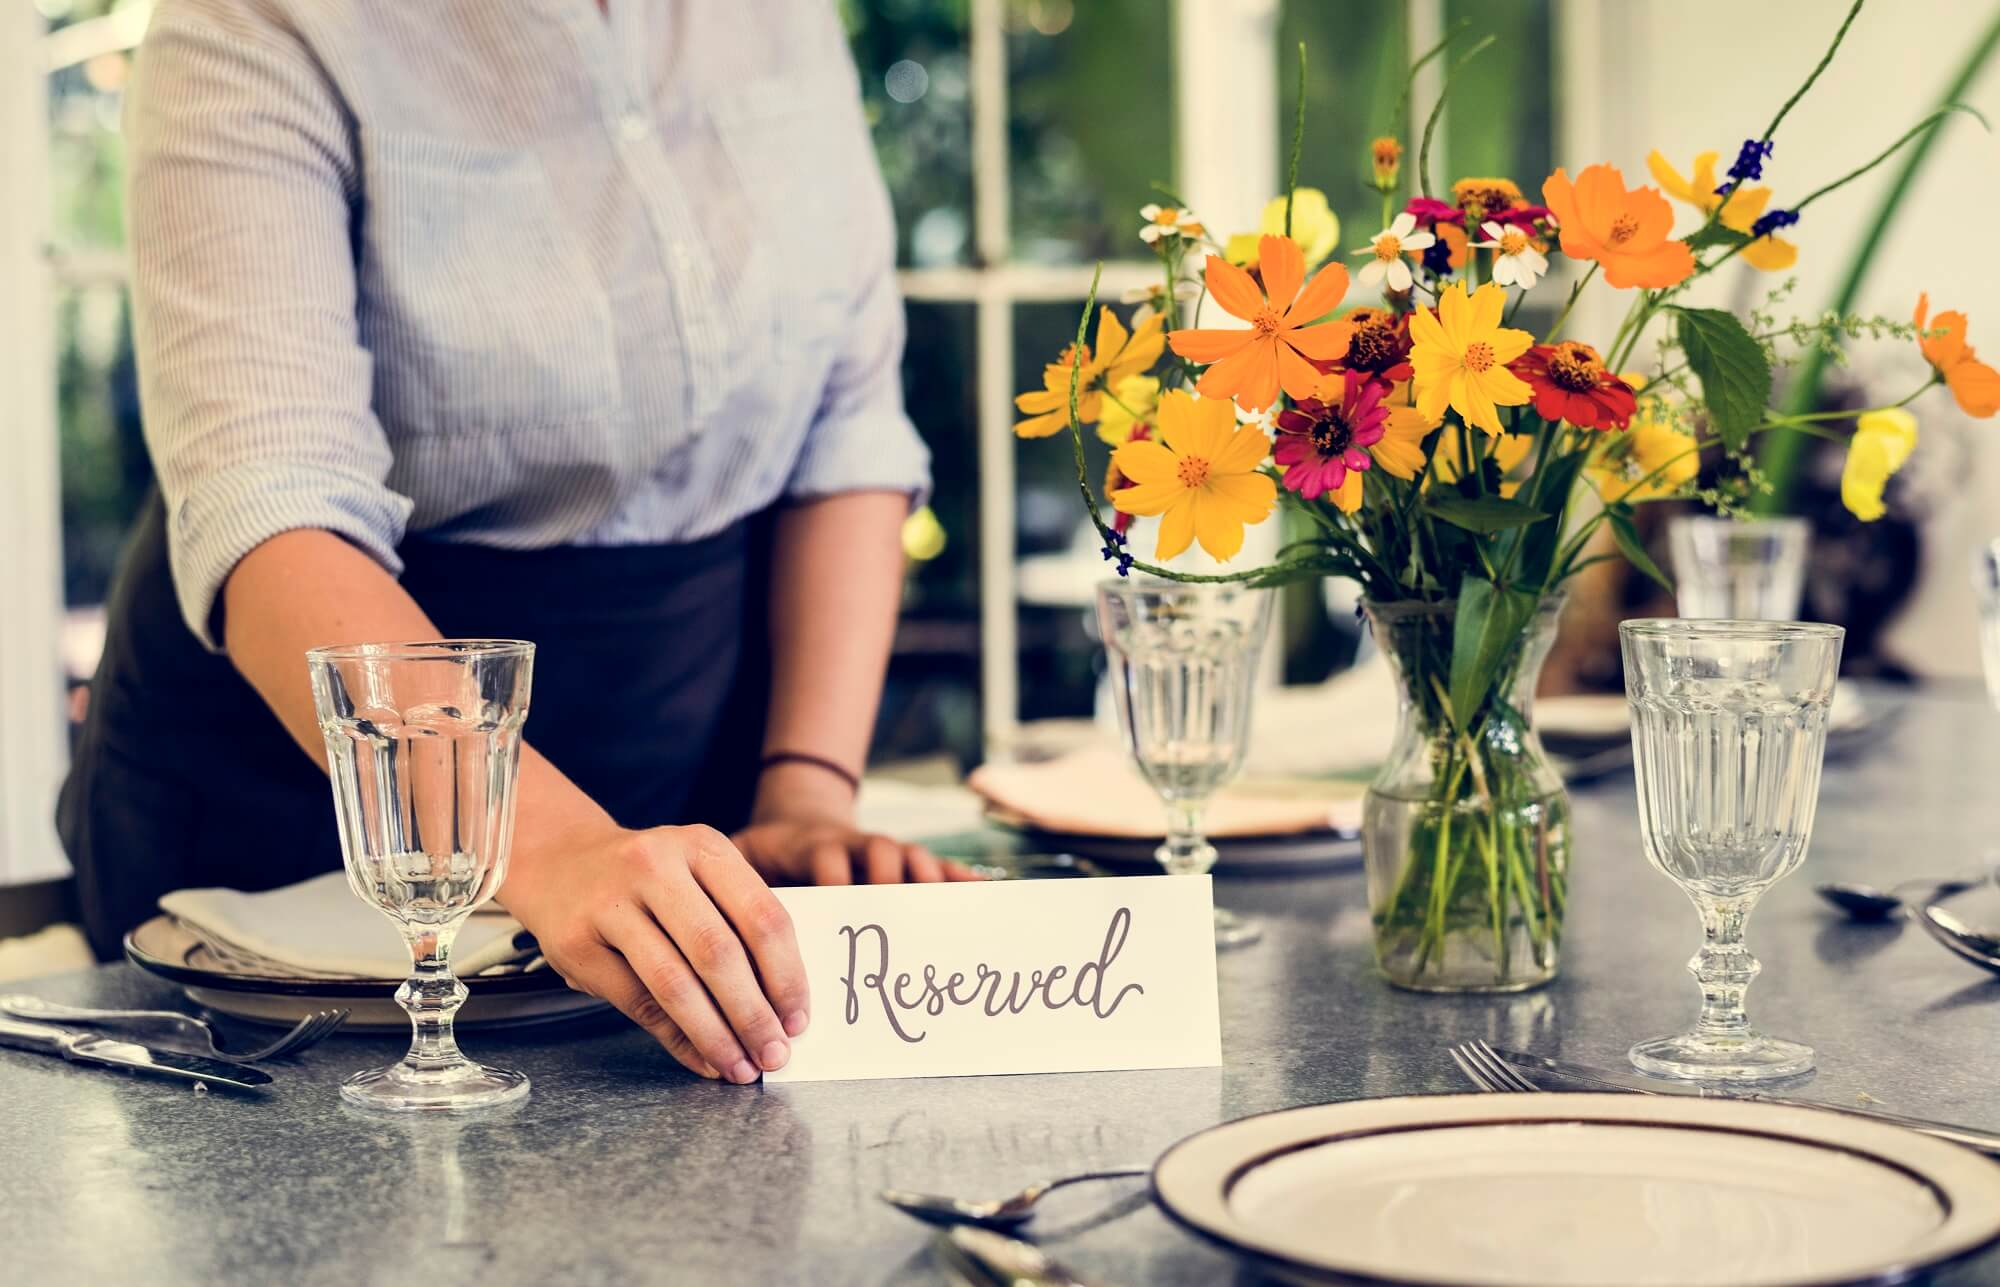 Caterers reserving table in cafe